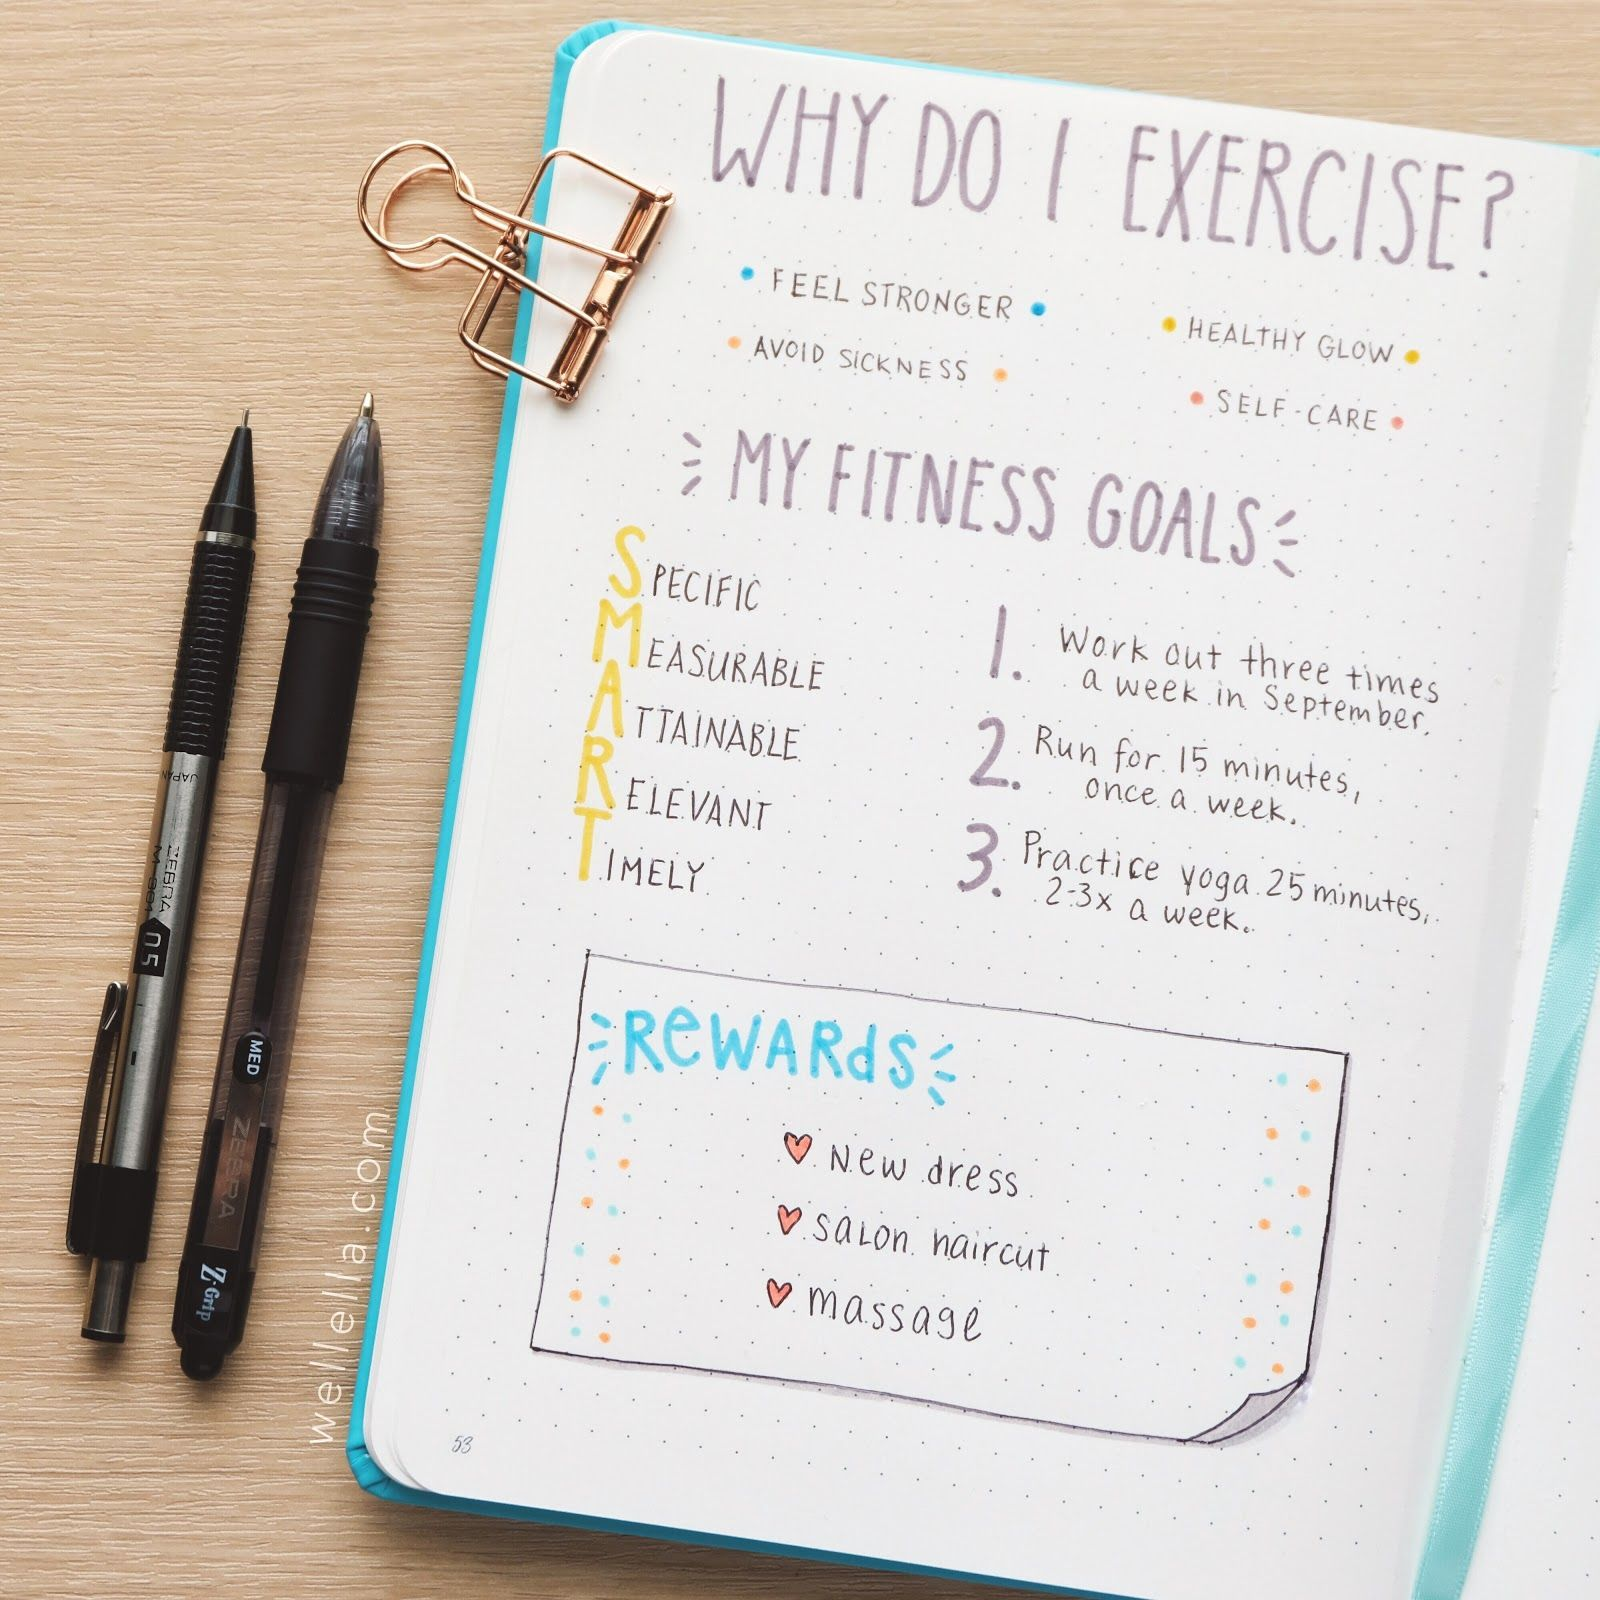 Bujo - Fitness Bullet Journal Page Ideas To Help You Track Your Exercise Goals In 2020 -  Did you kn...